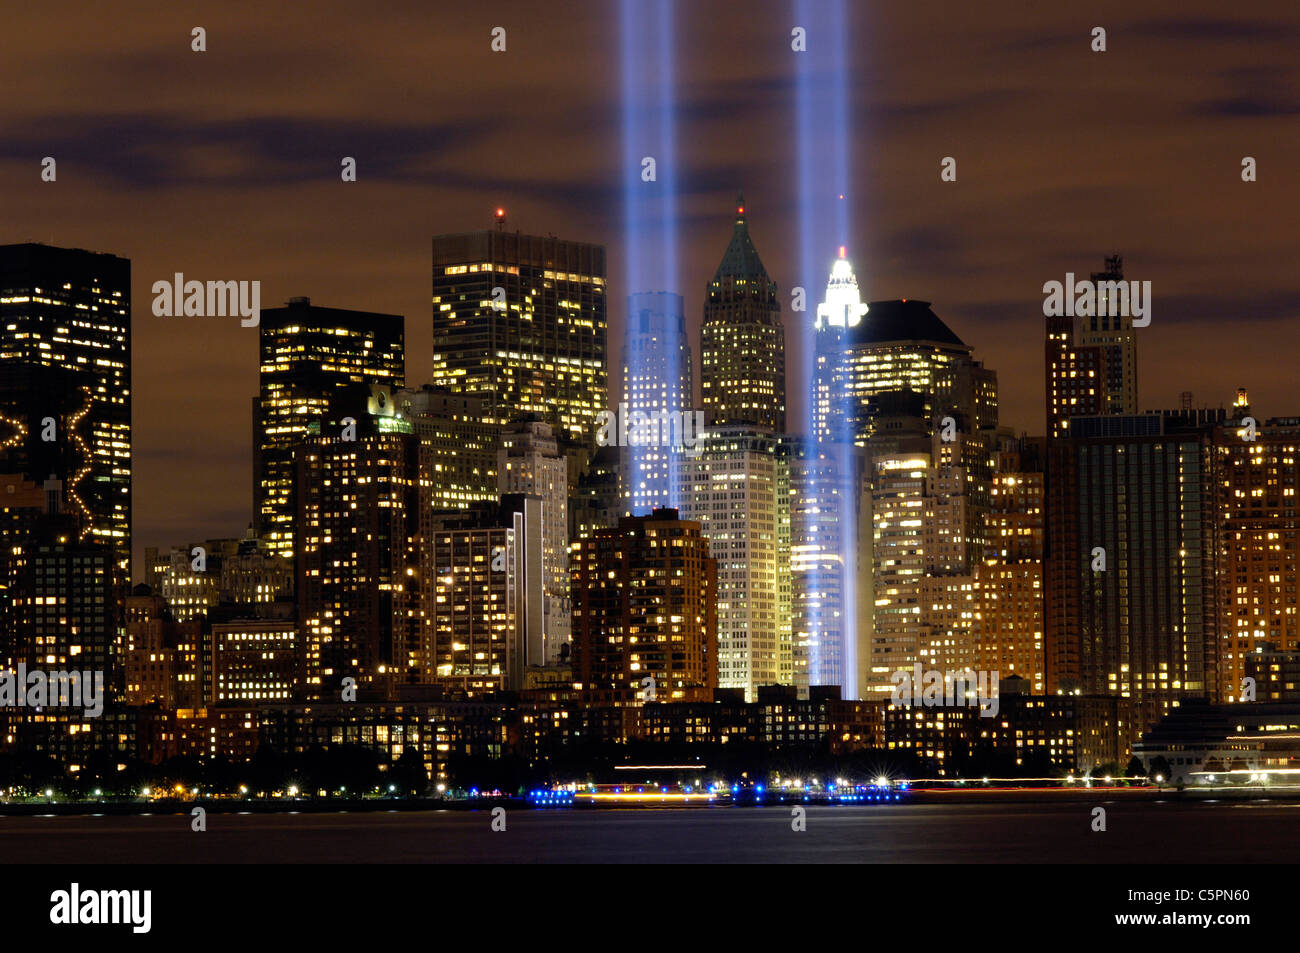 The 'Tribute in Light' memorial is in remembrance of the events of Sept. 11, 2001. - Stock Image